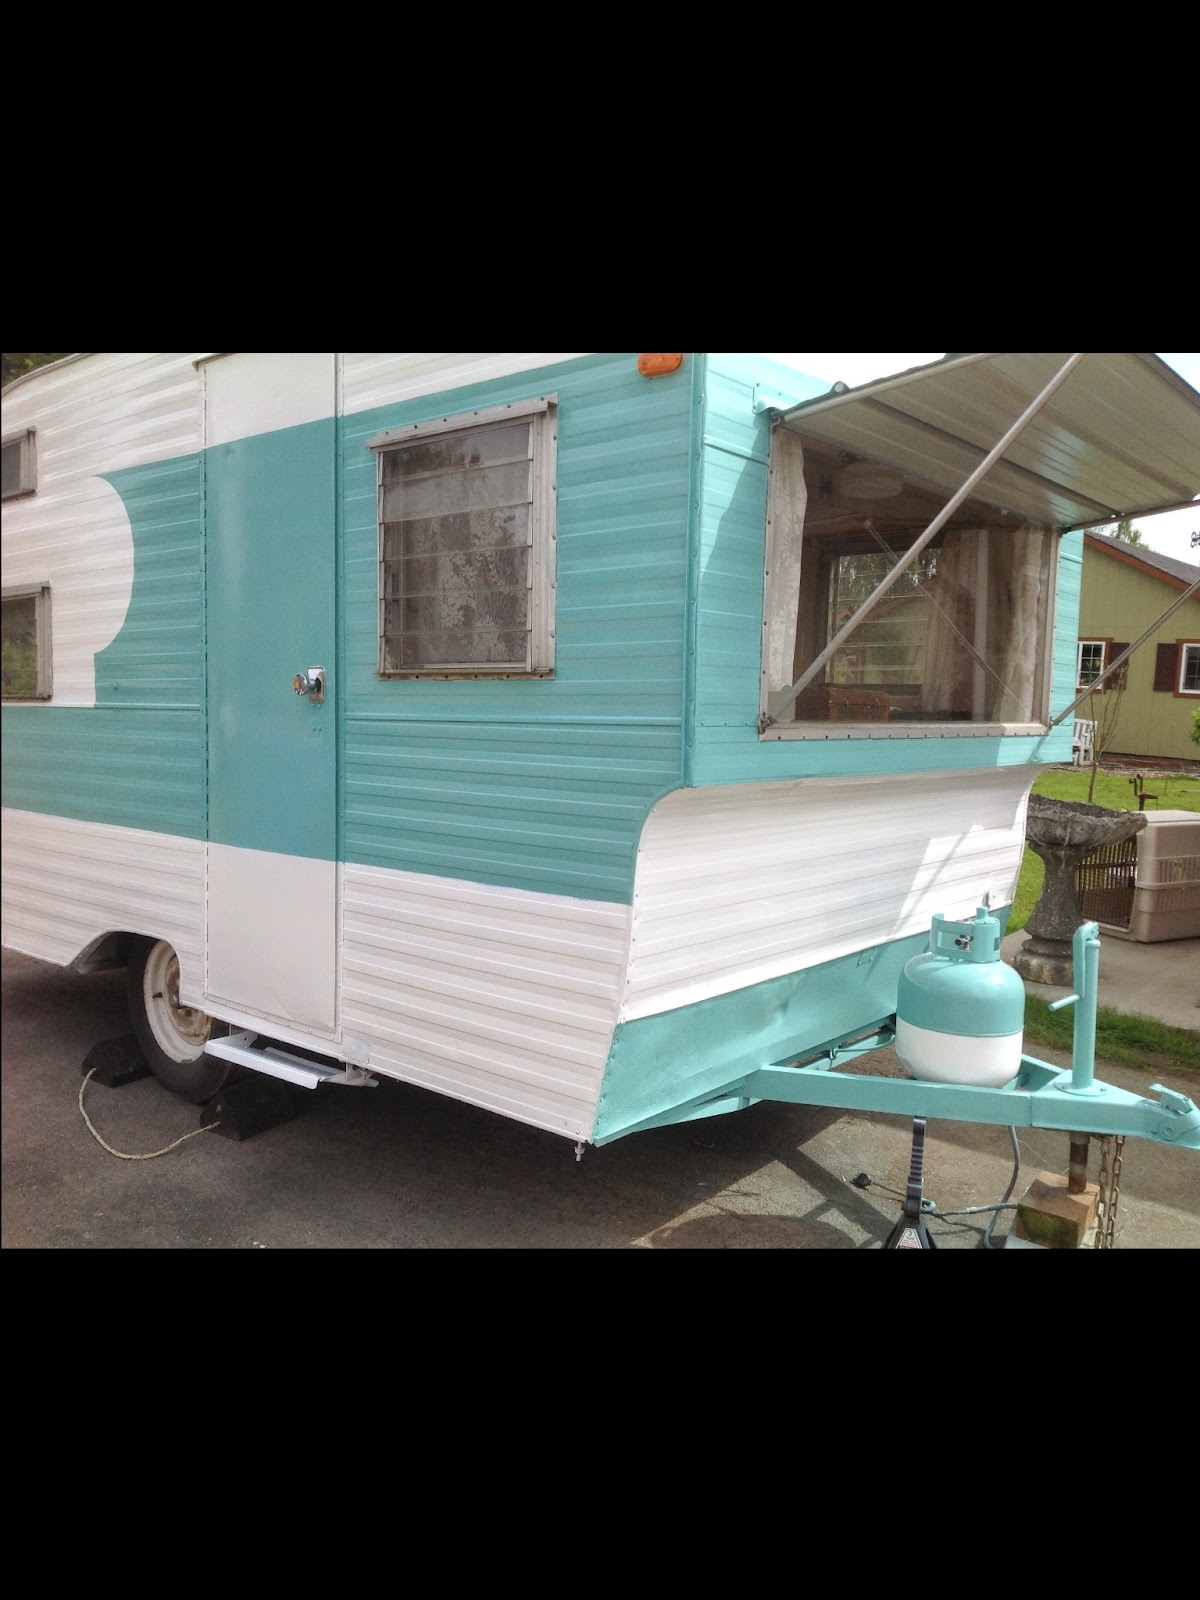 Amys VintageTrailers VINTAGE TRAILER FOR SALE 1963 OASIS 15